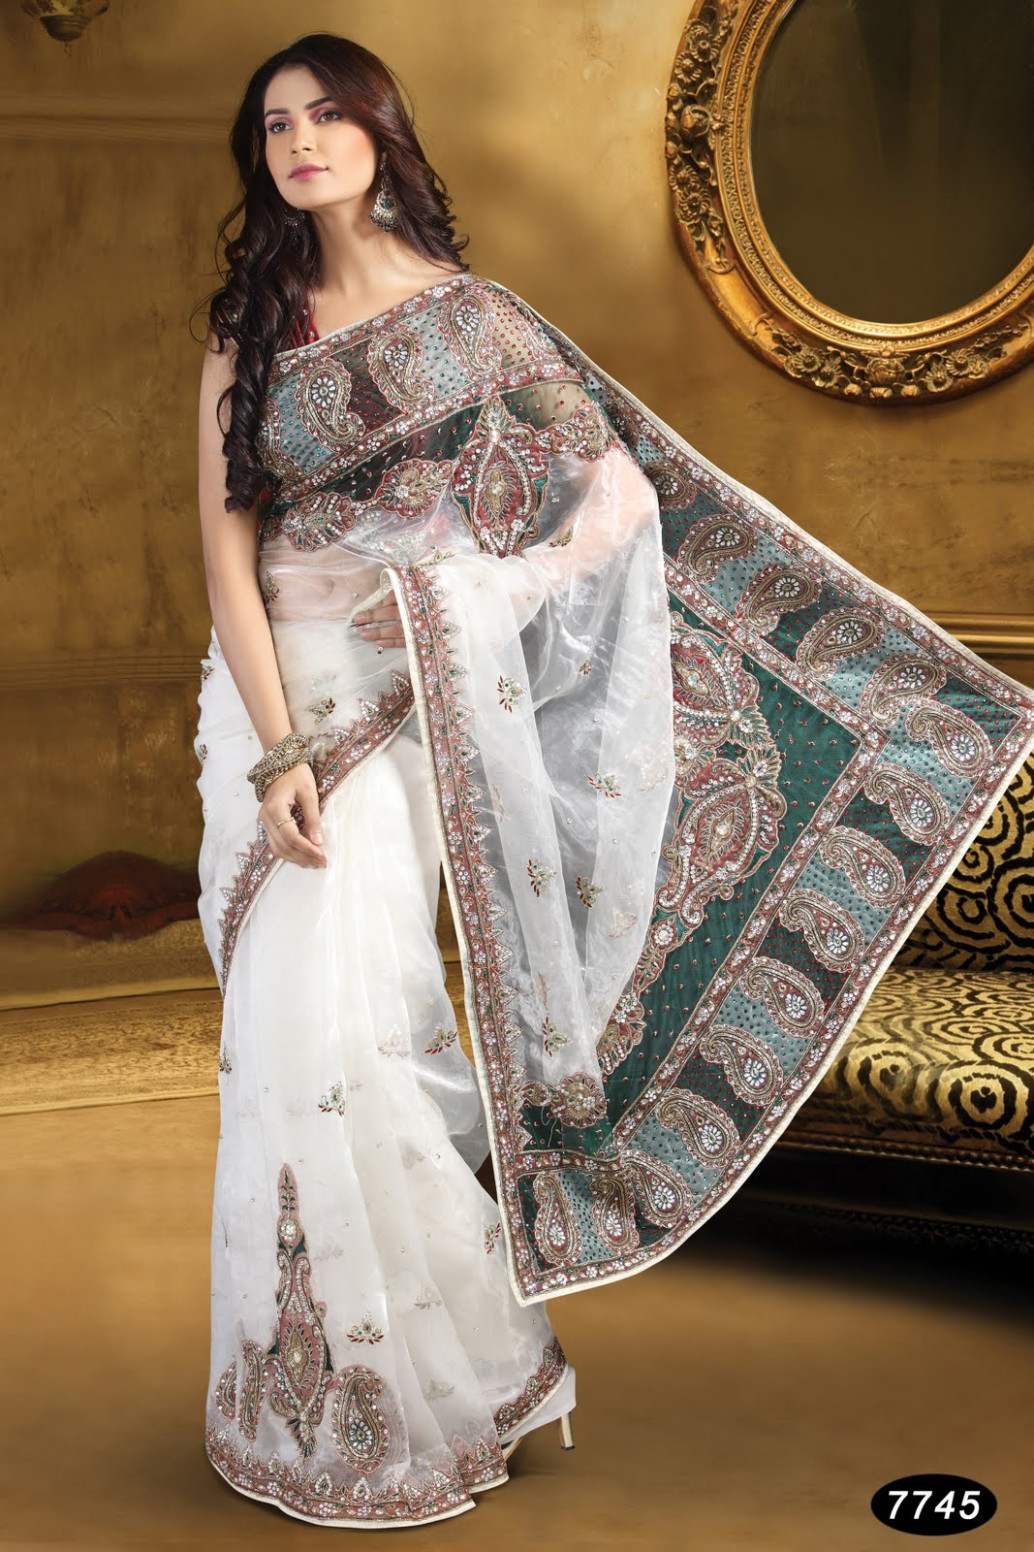 Panetar Sarees Manufacturer in Maharashtra India by